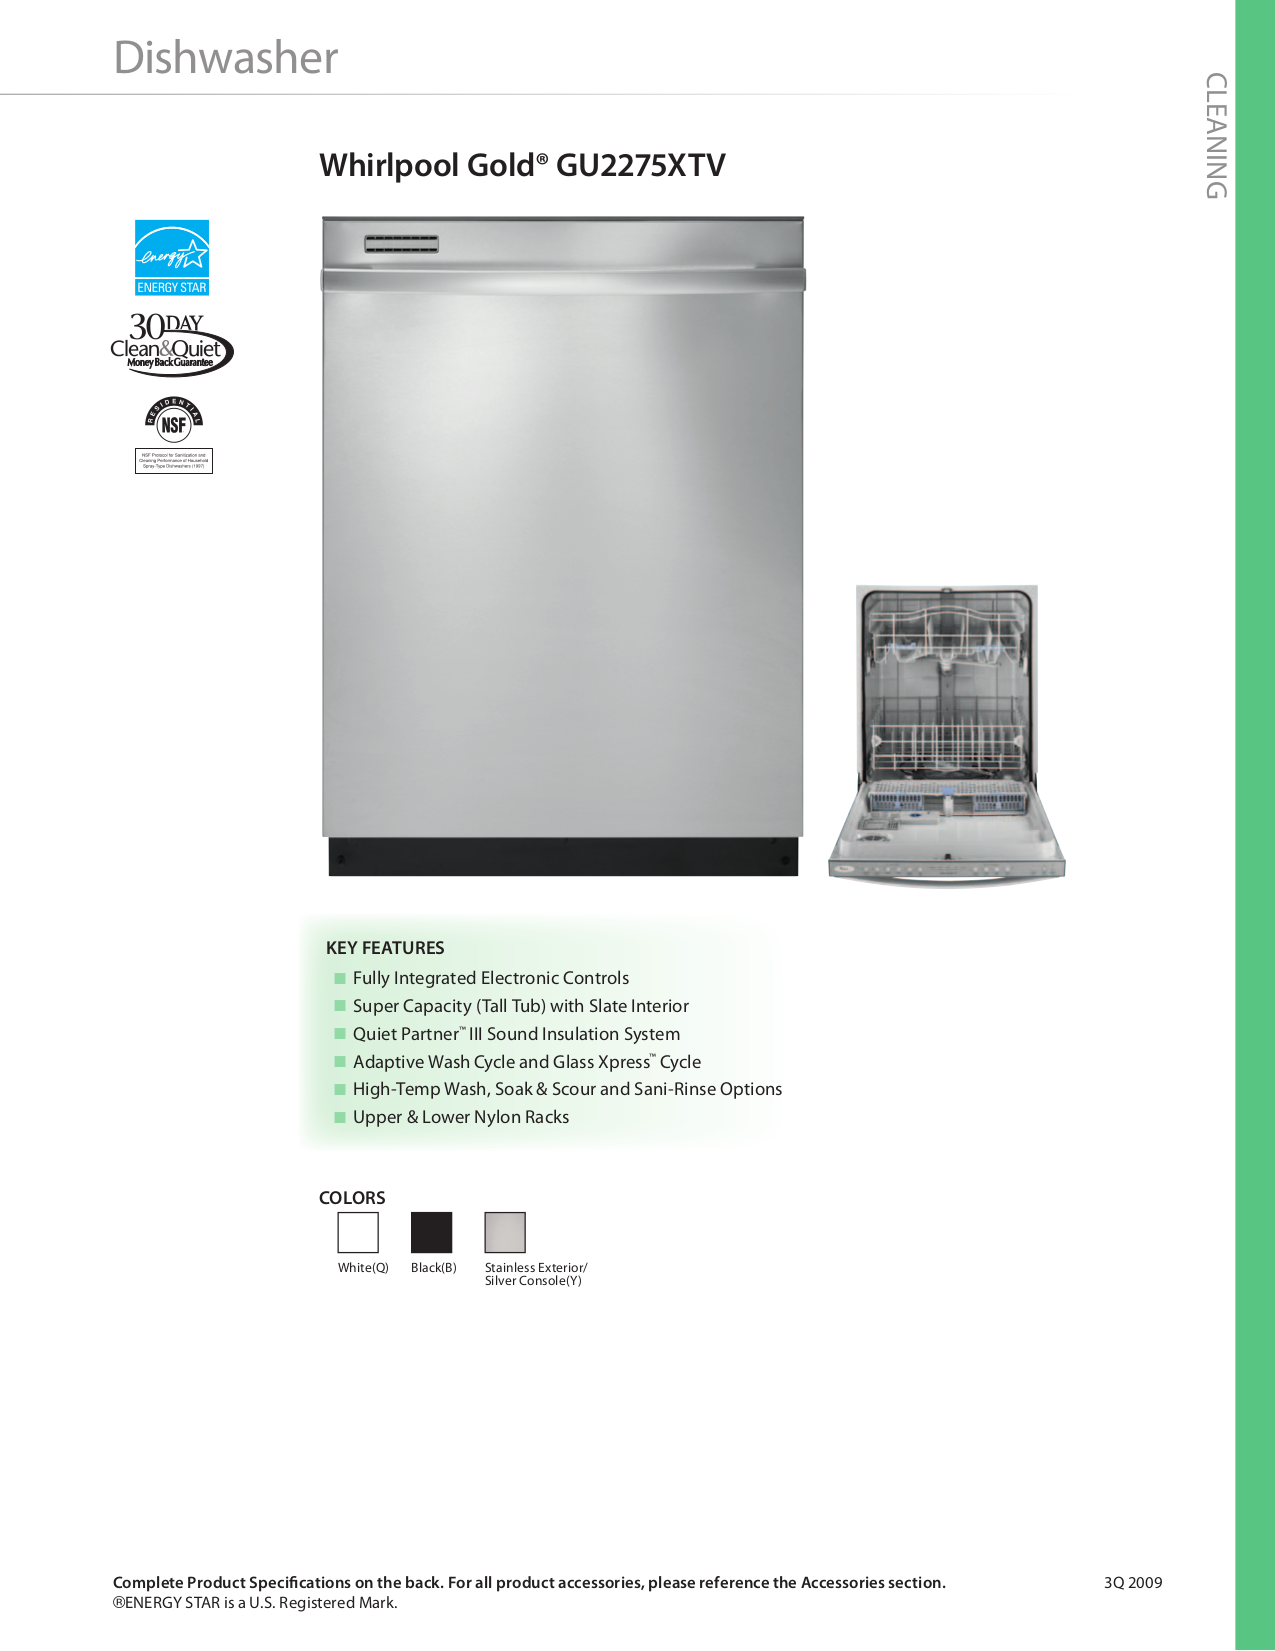 Download Free Pdf For Whirlpool Gold Gu2275xtv Dishwasher